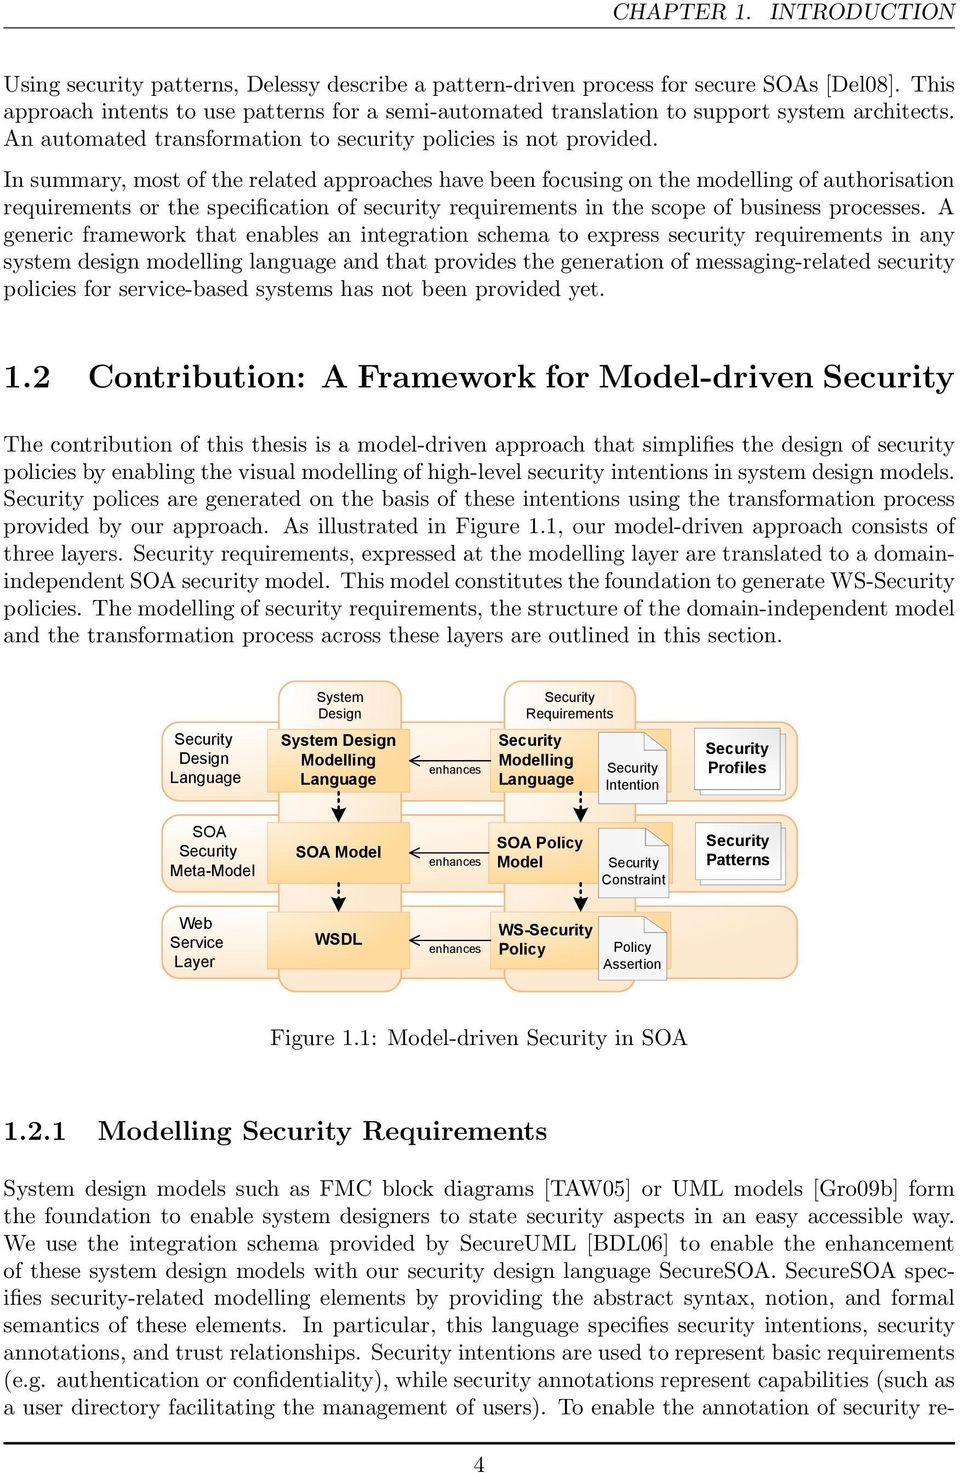 In summary, most of the related approaches have been focusing on the modelling of authorisation requirements or the specification of security requirements in the scope of business processes.